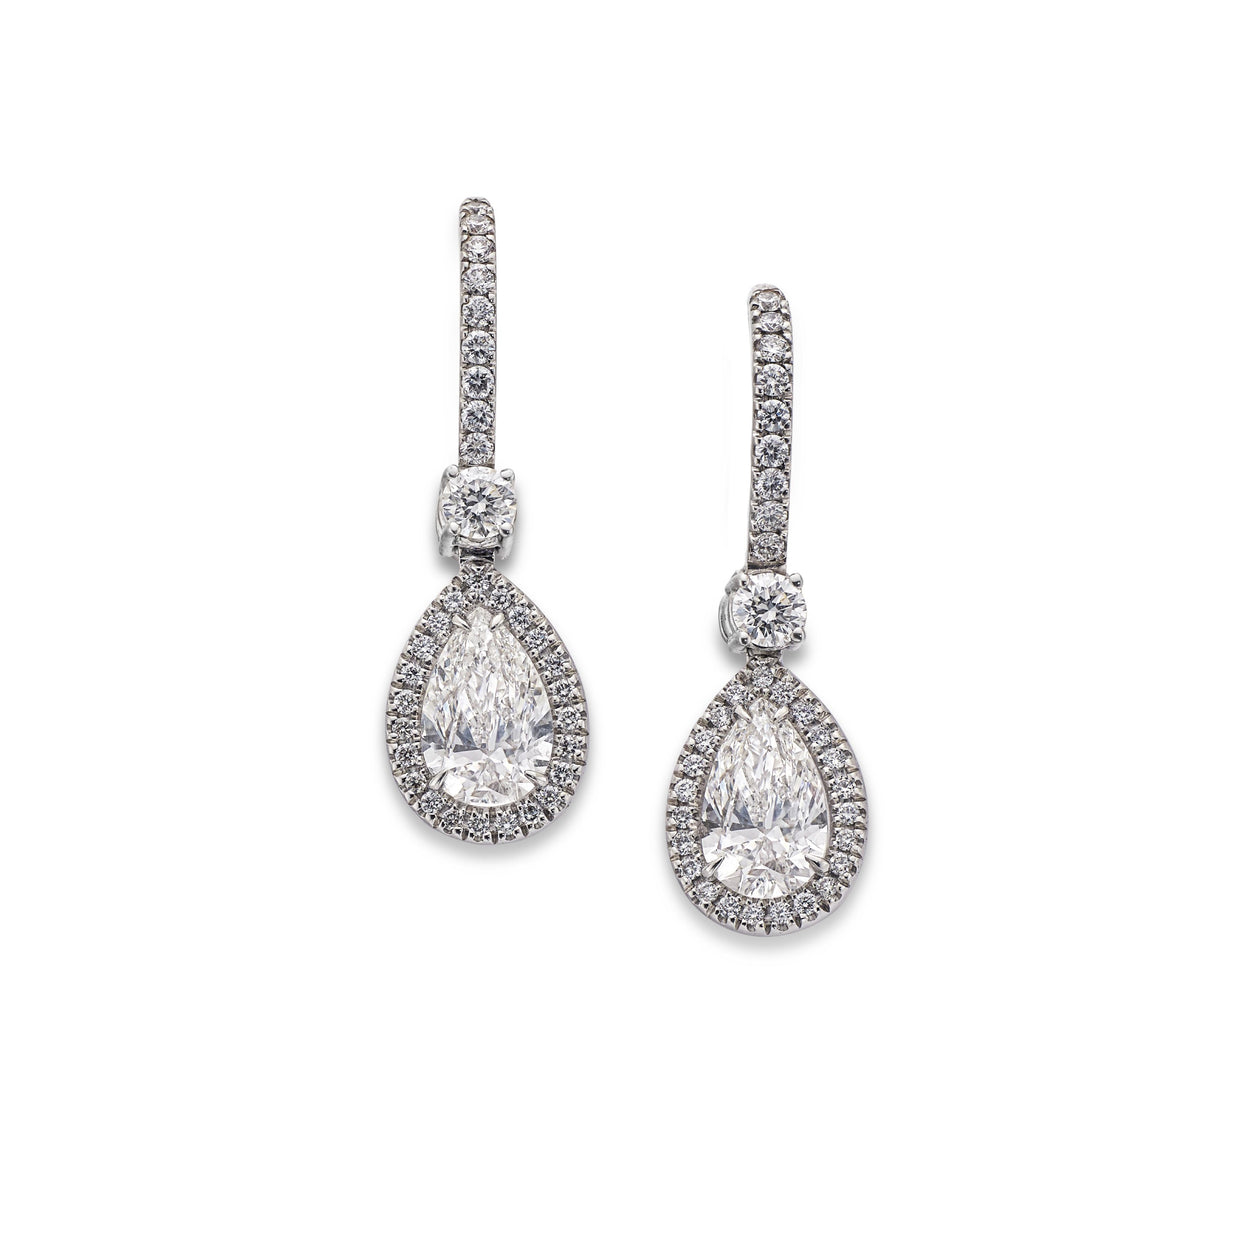 Pear-Cut Cluster Diamond Drop Earrings in 18ct White Gold - Hamilton & Inches